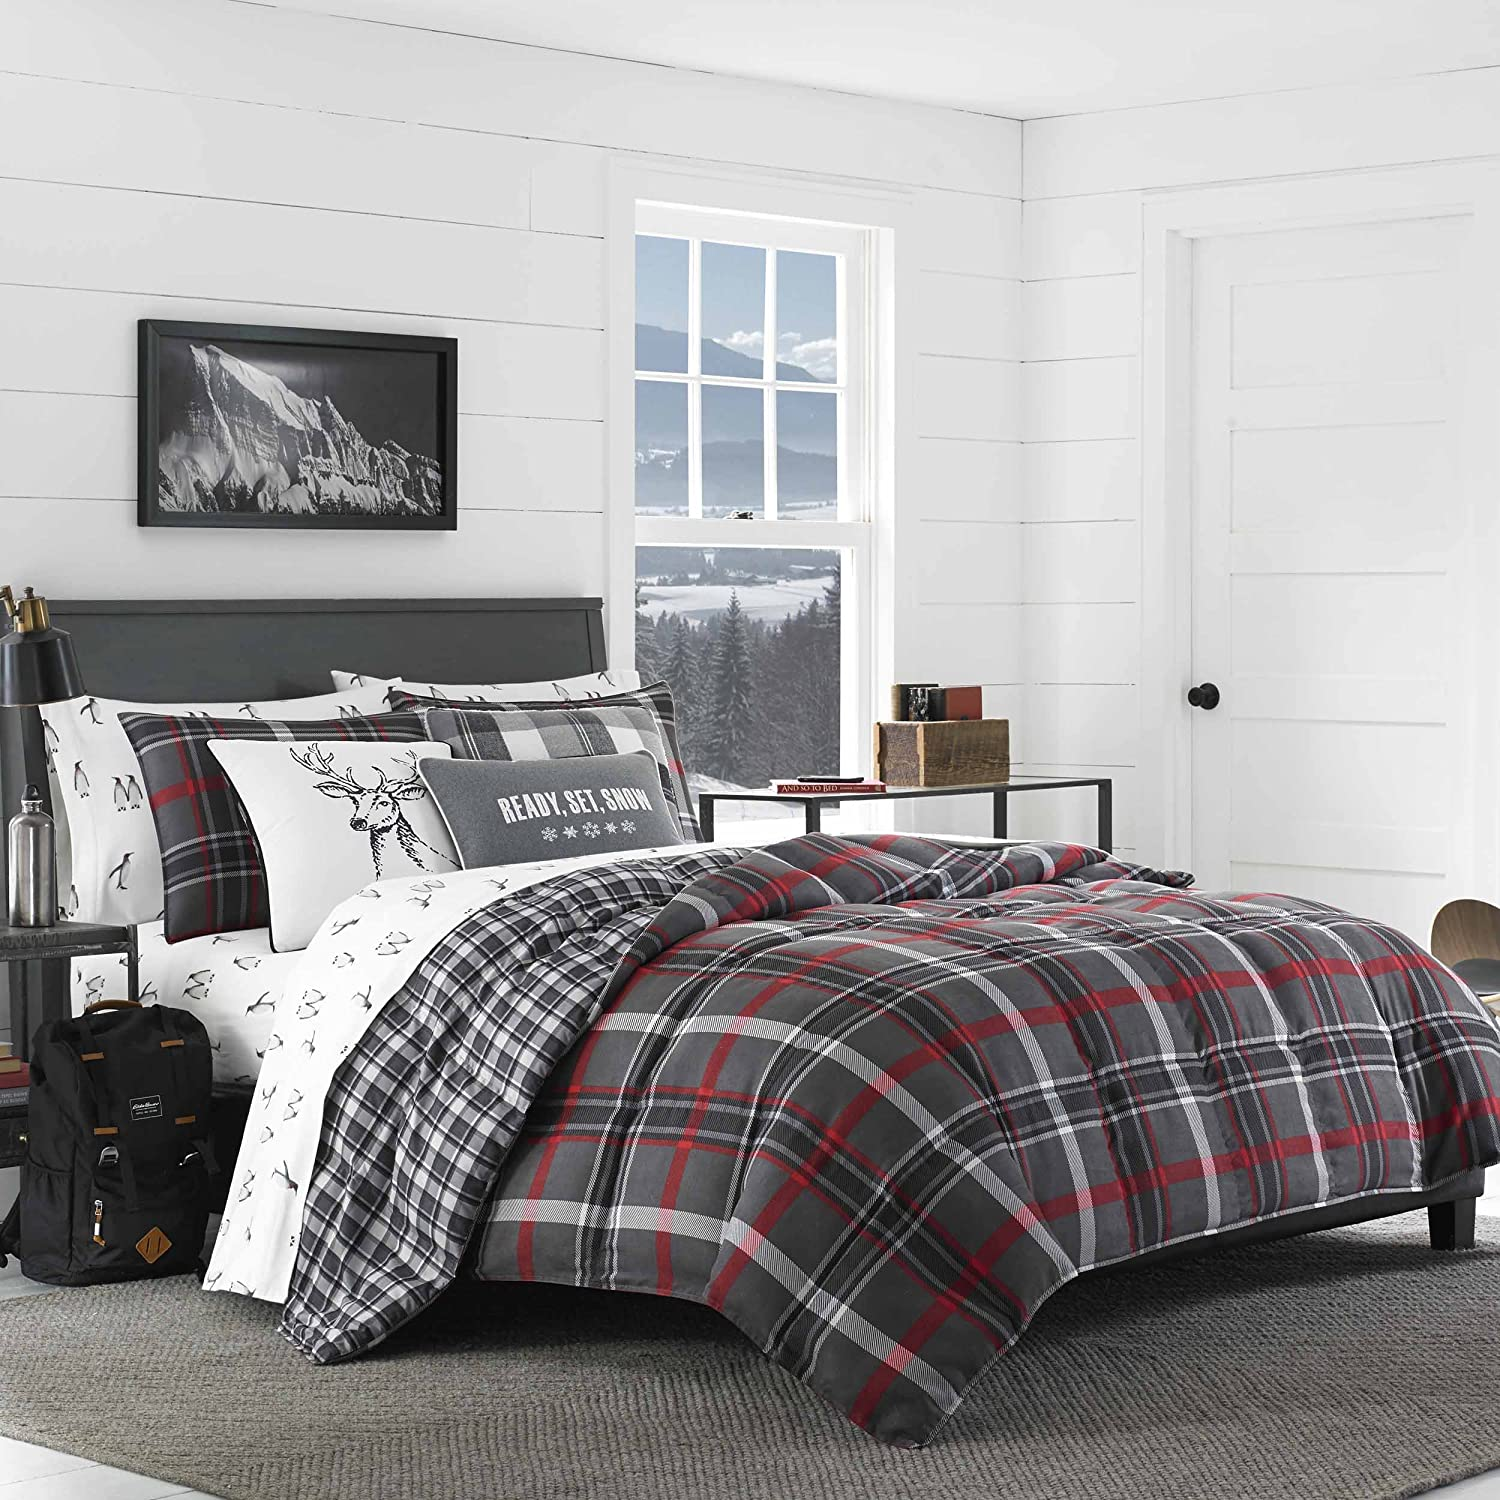 Eddie Bauer Whistler Ridge Comforter Set, King, Dark Grey